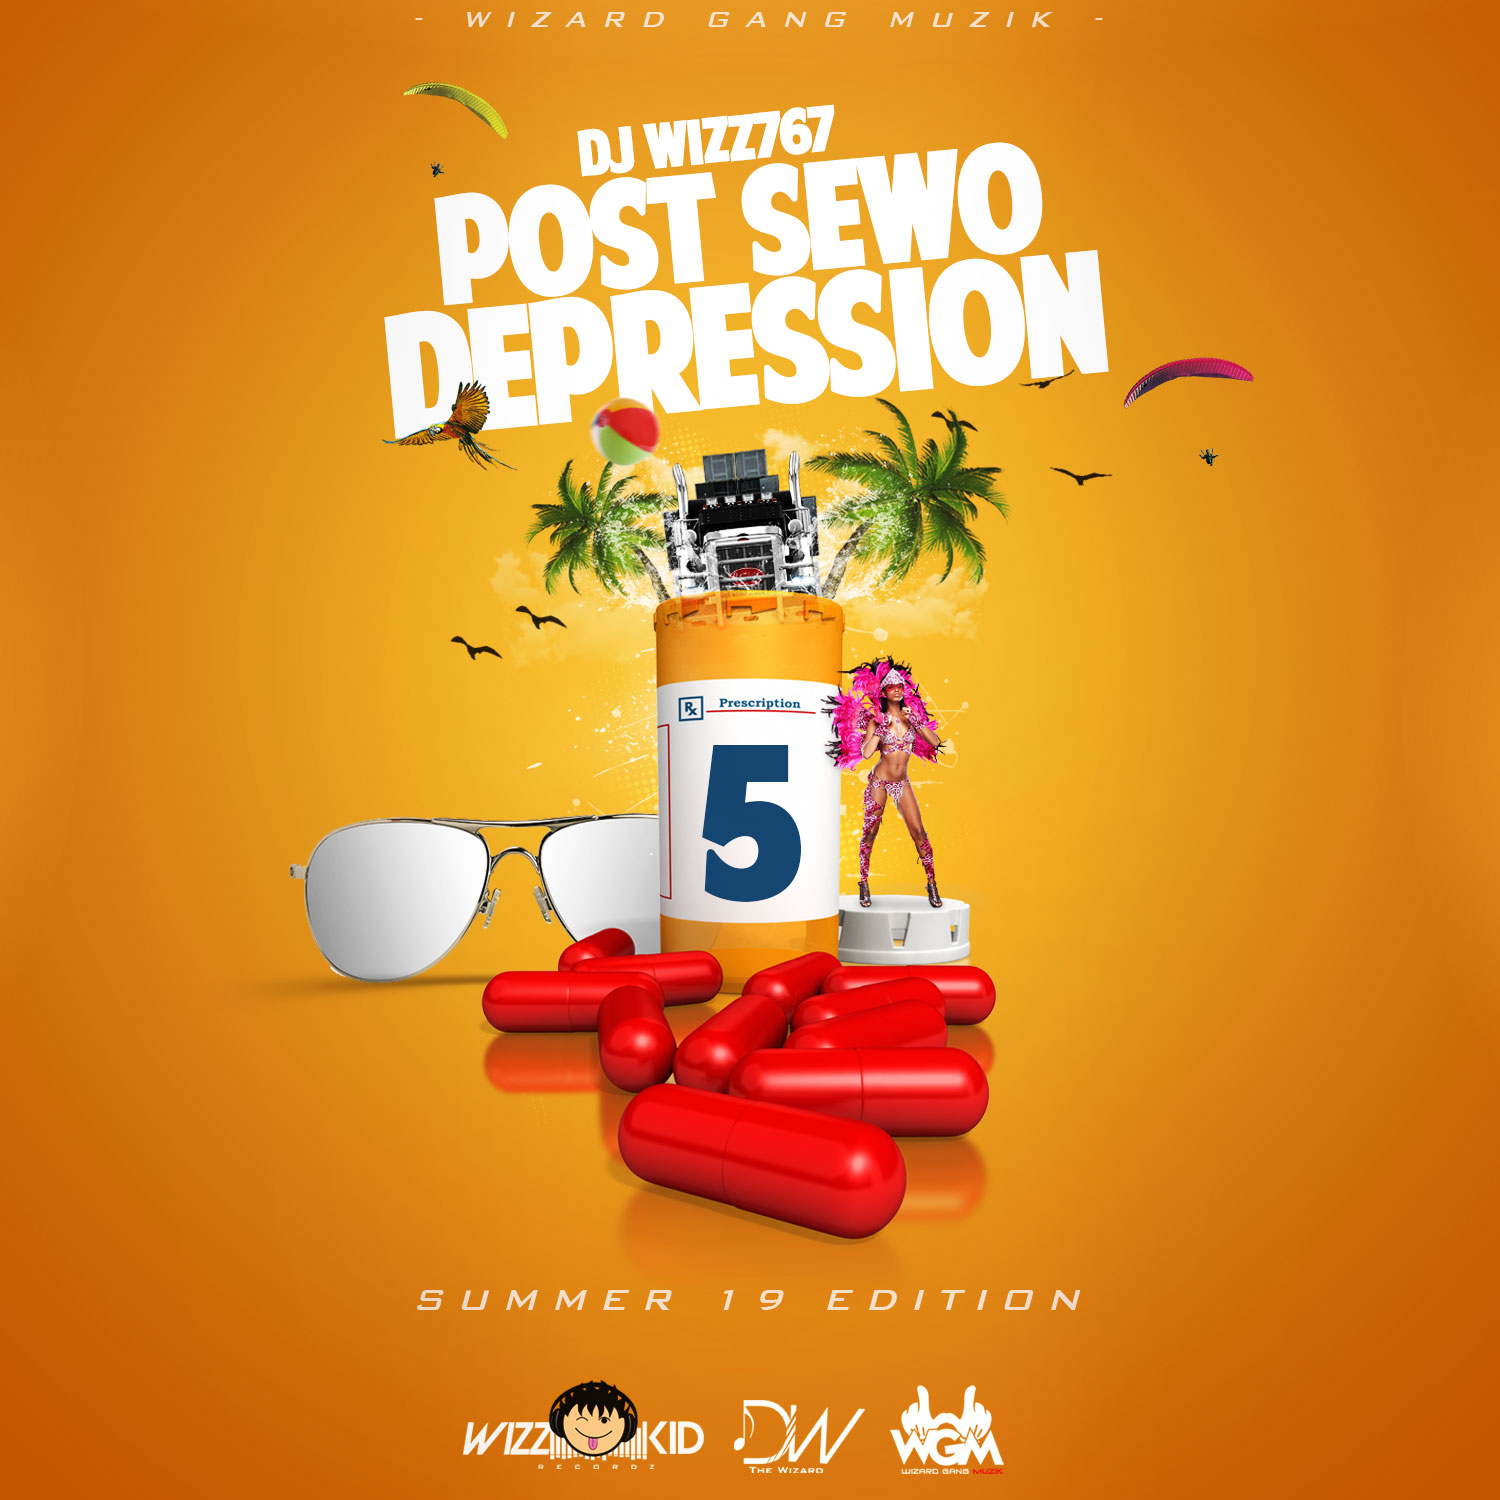 Dj Wizz767 – POST SEWO DEPRESSION 5 (SUMMER 19 EDITION)